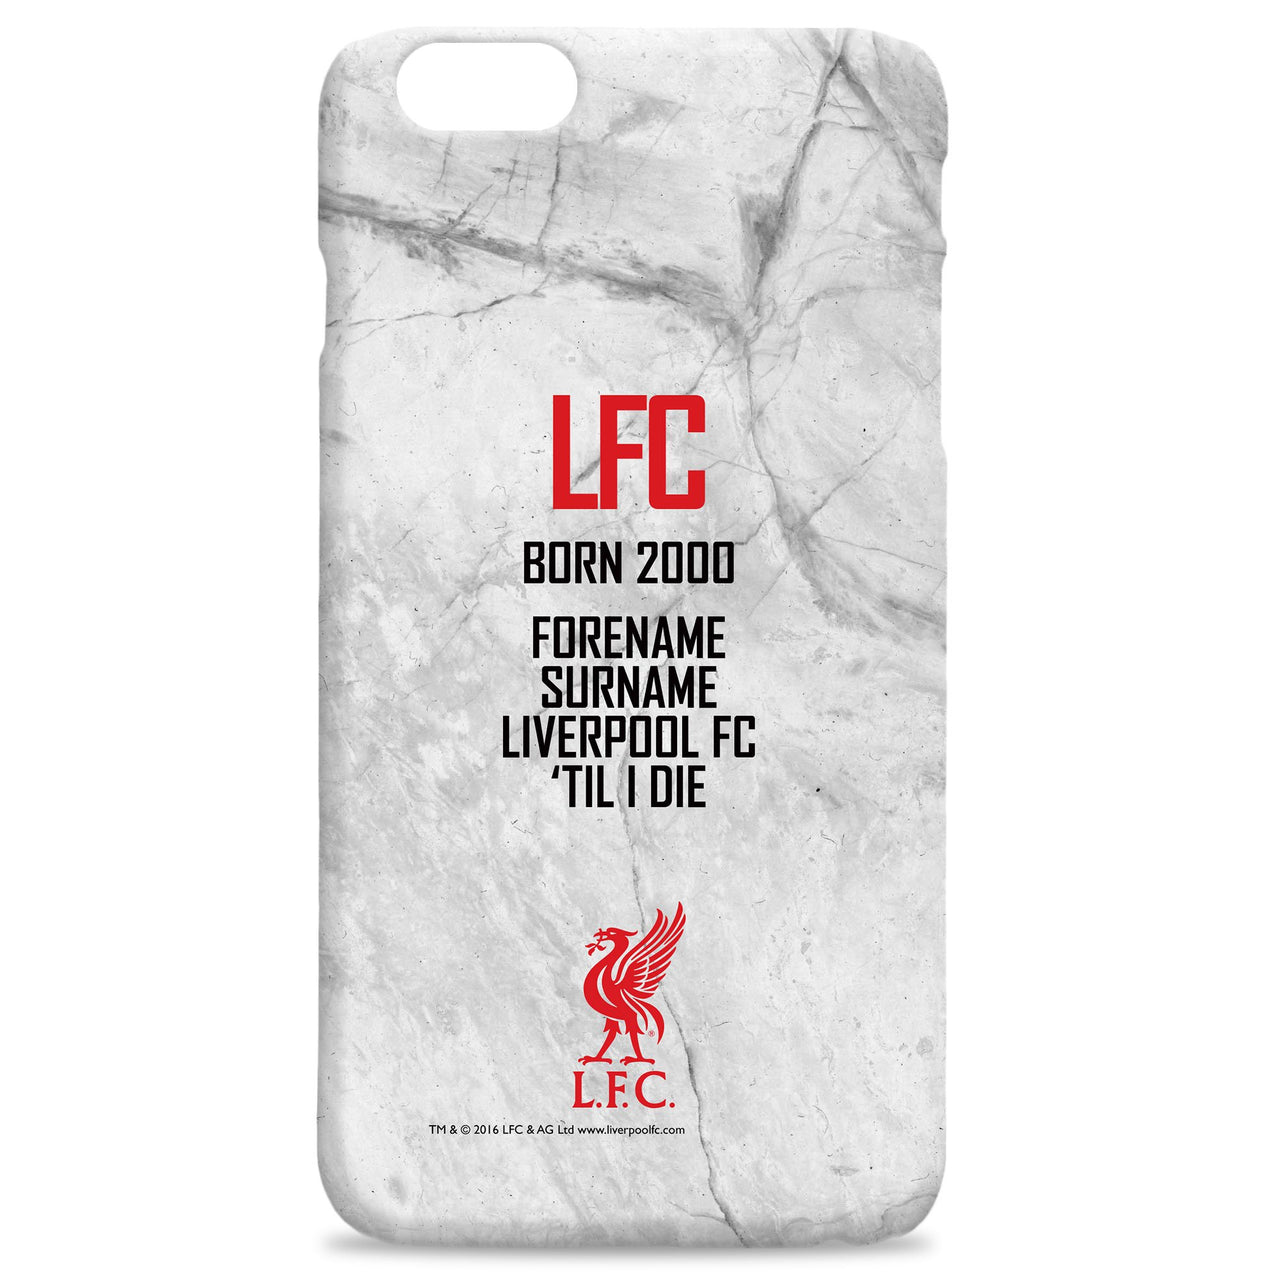 Liverpool FC 'Til I Die Hard Back Phone Case, Gifts